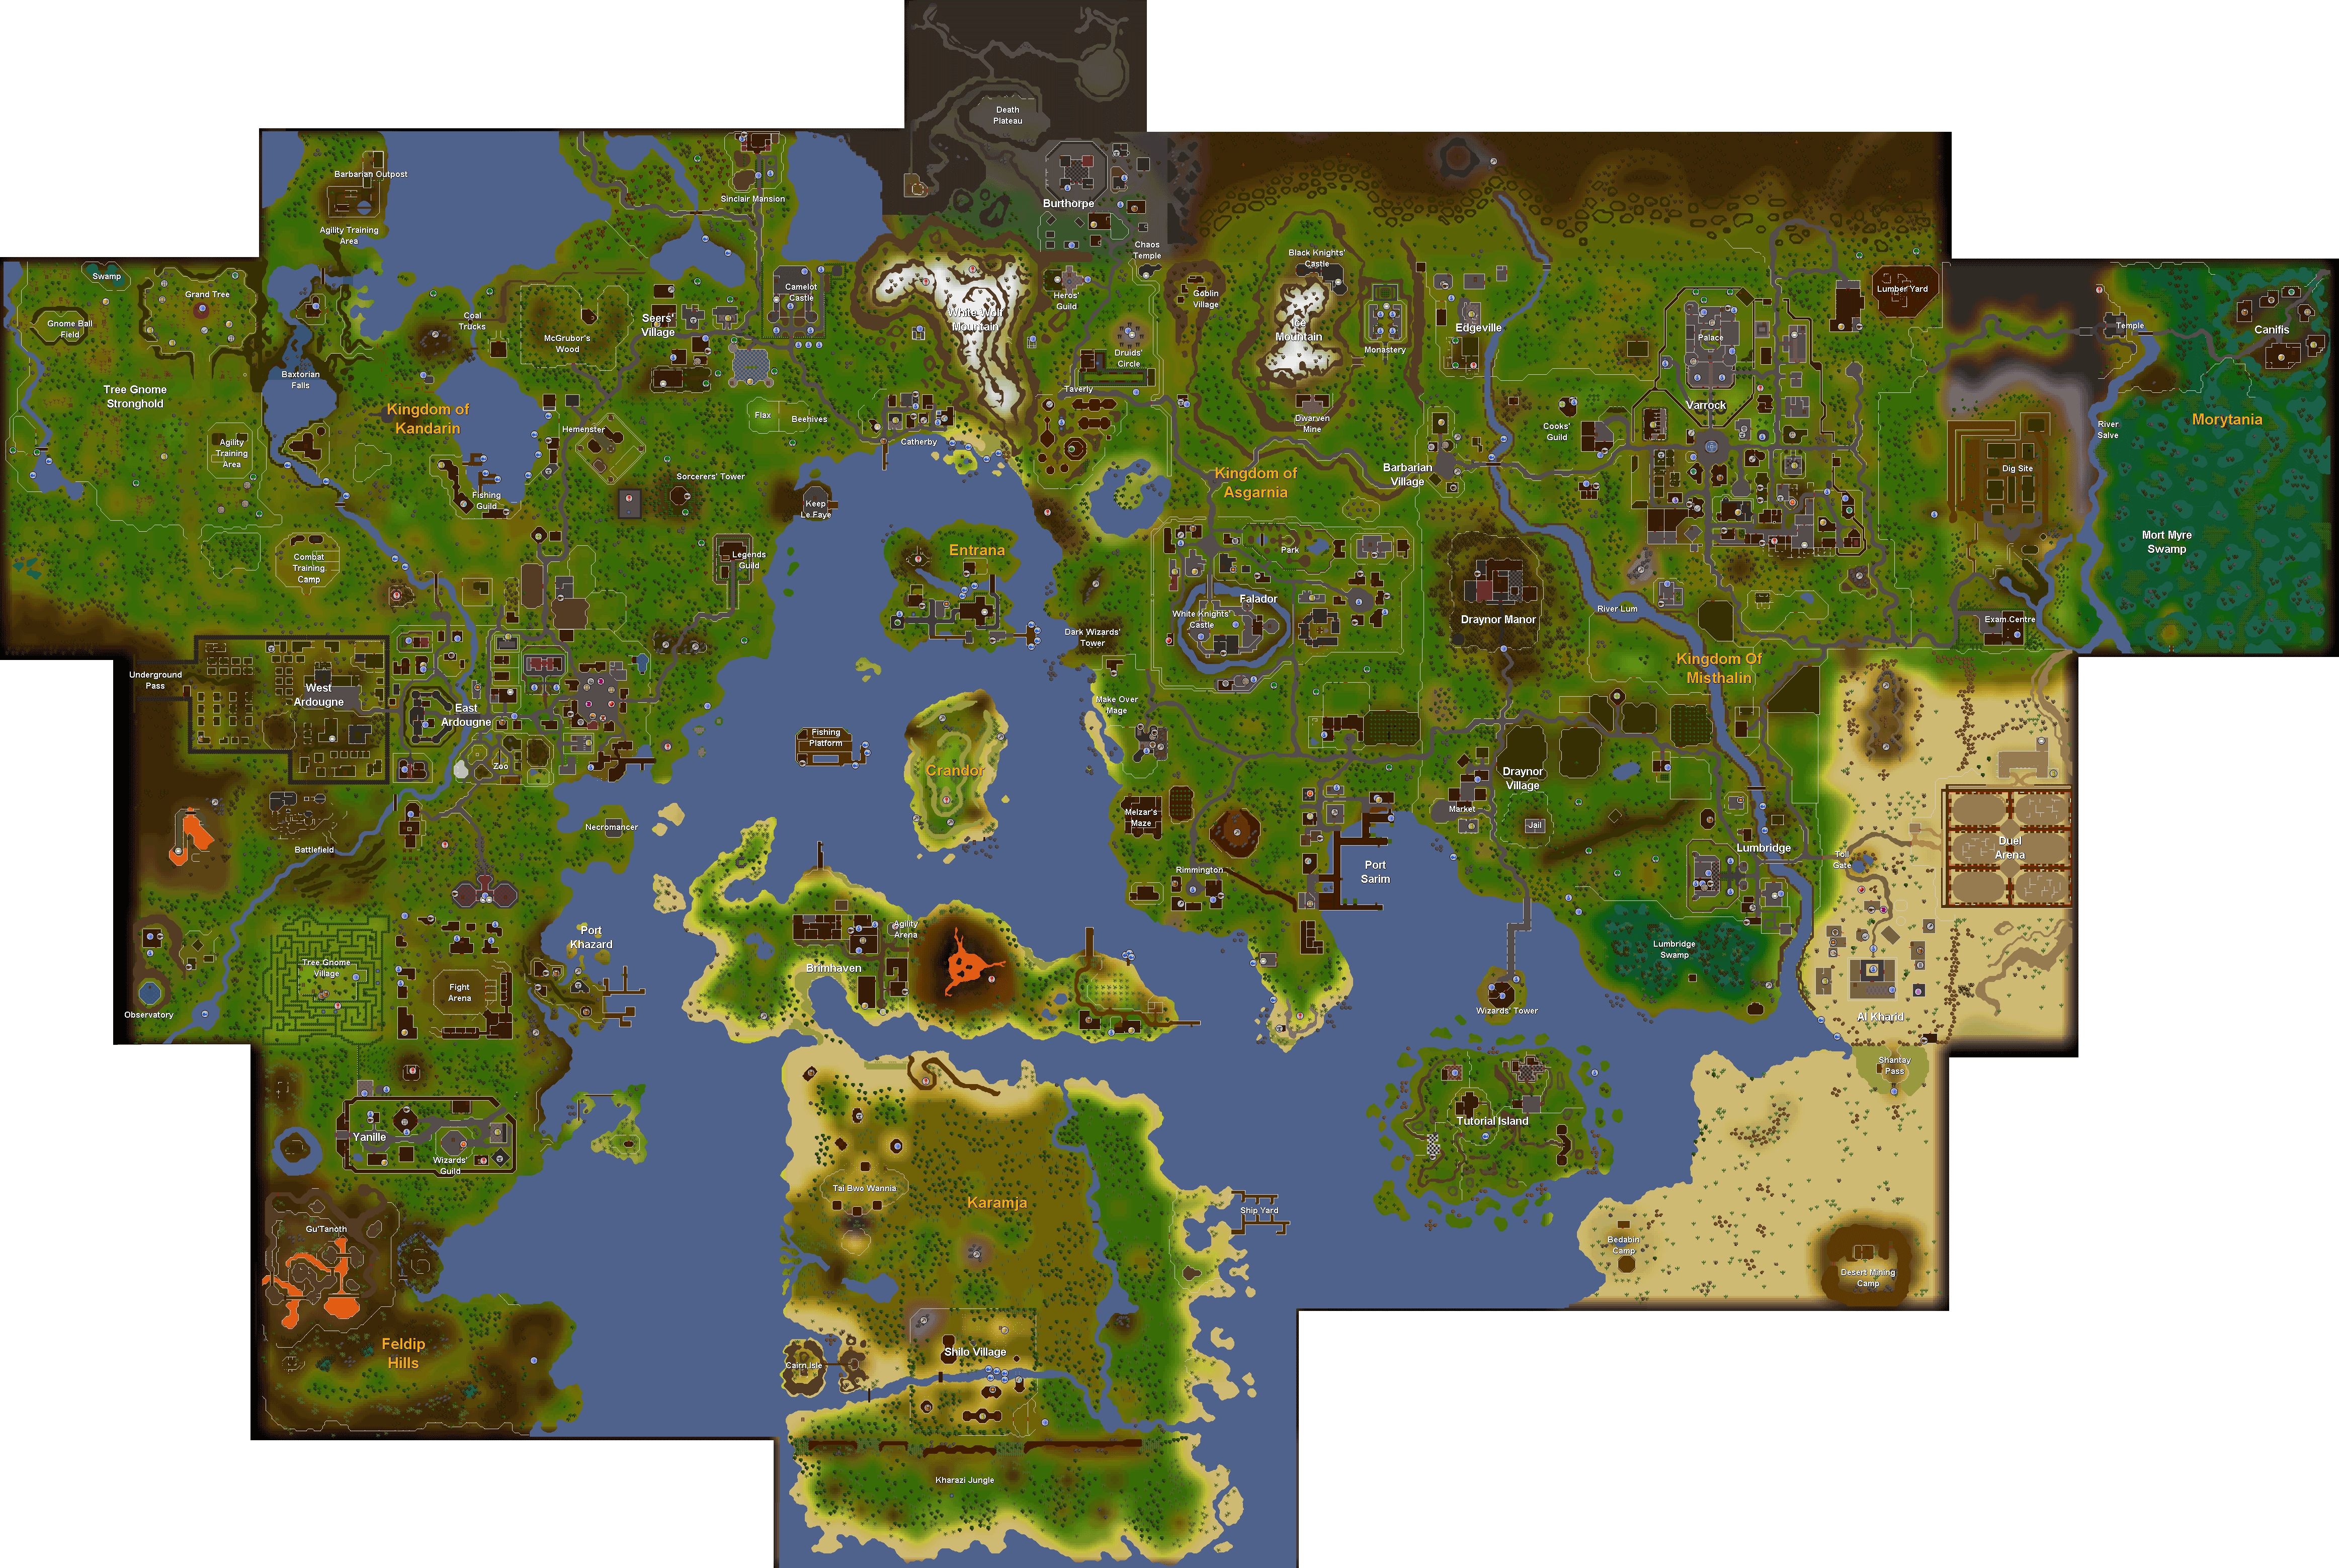 Rs worldmap links   Rs Mighty Gods Helping site  http   www runehq com maps rs2worldmap png